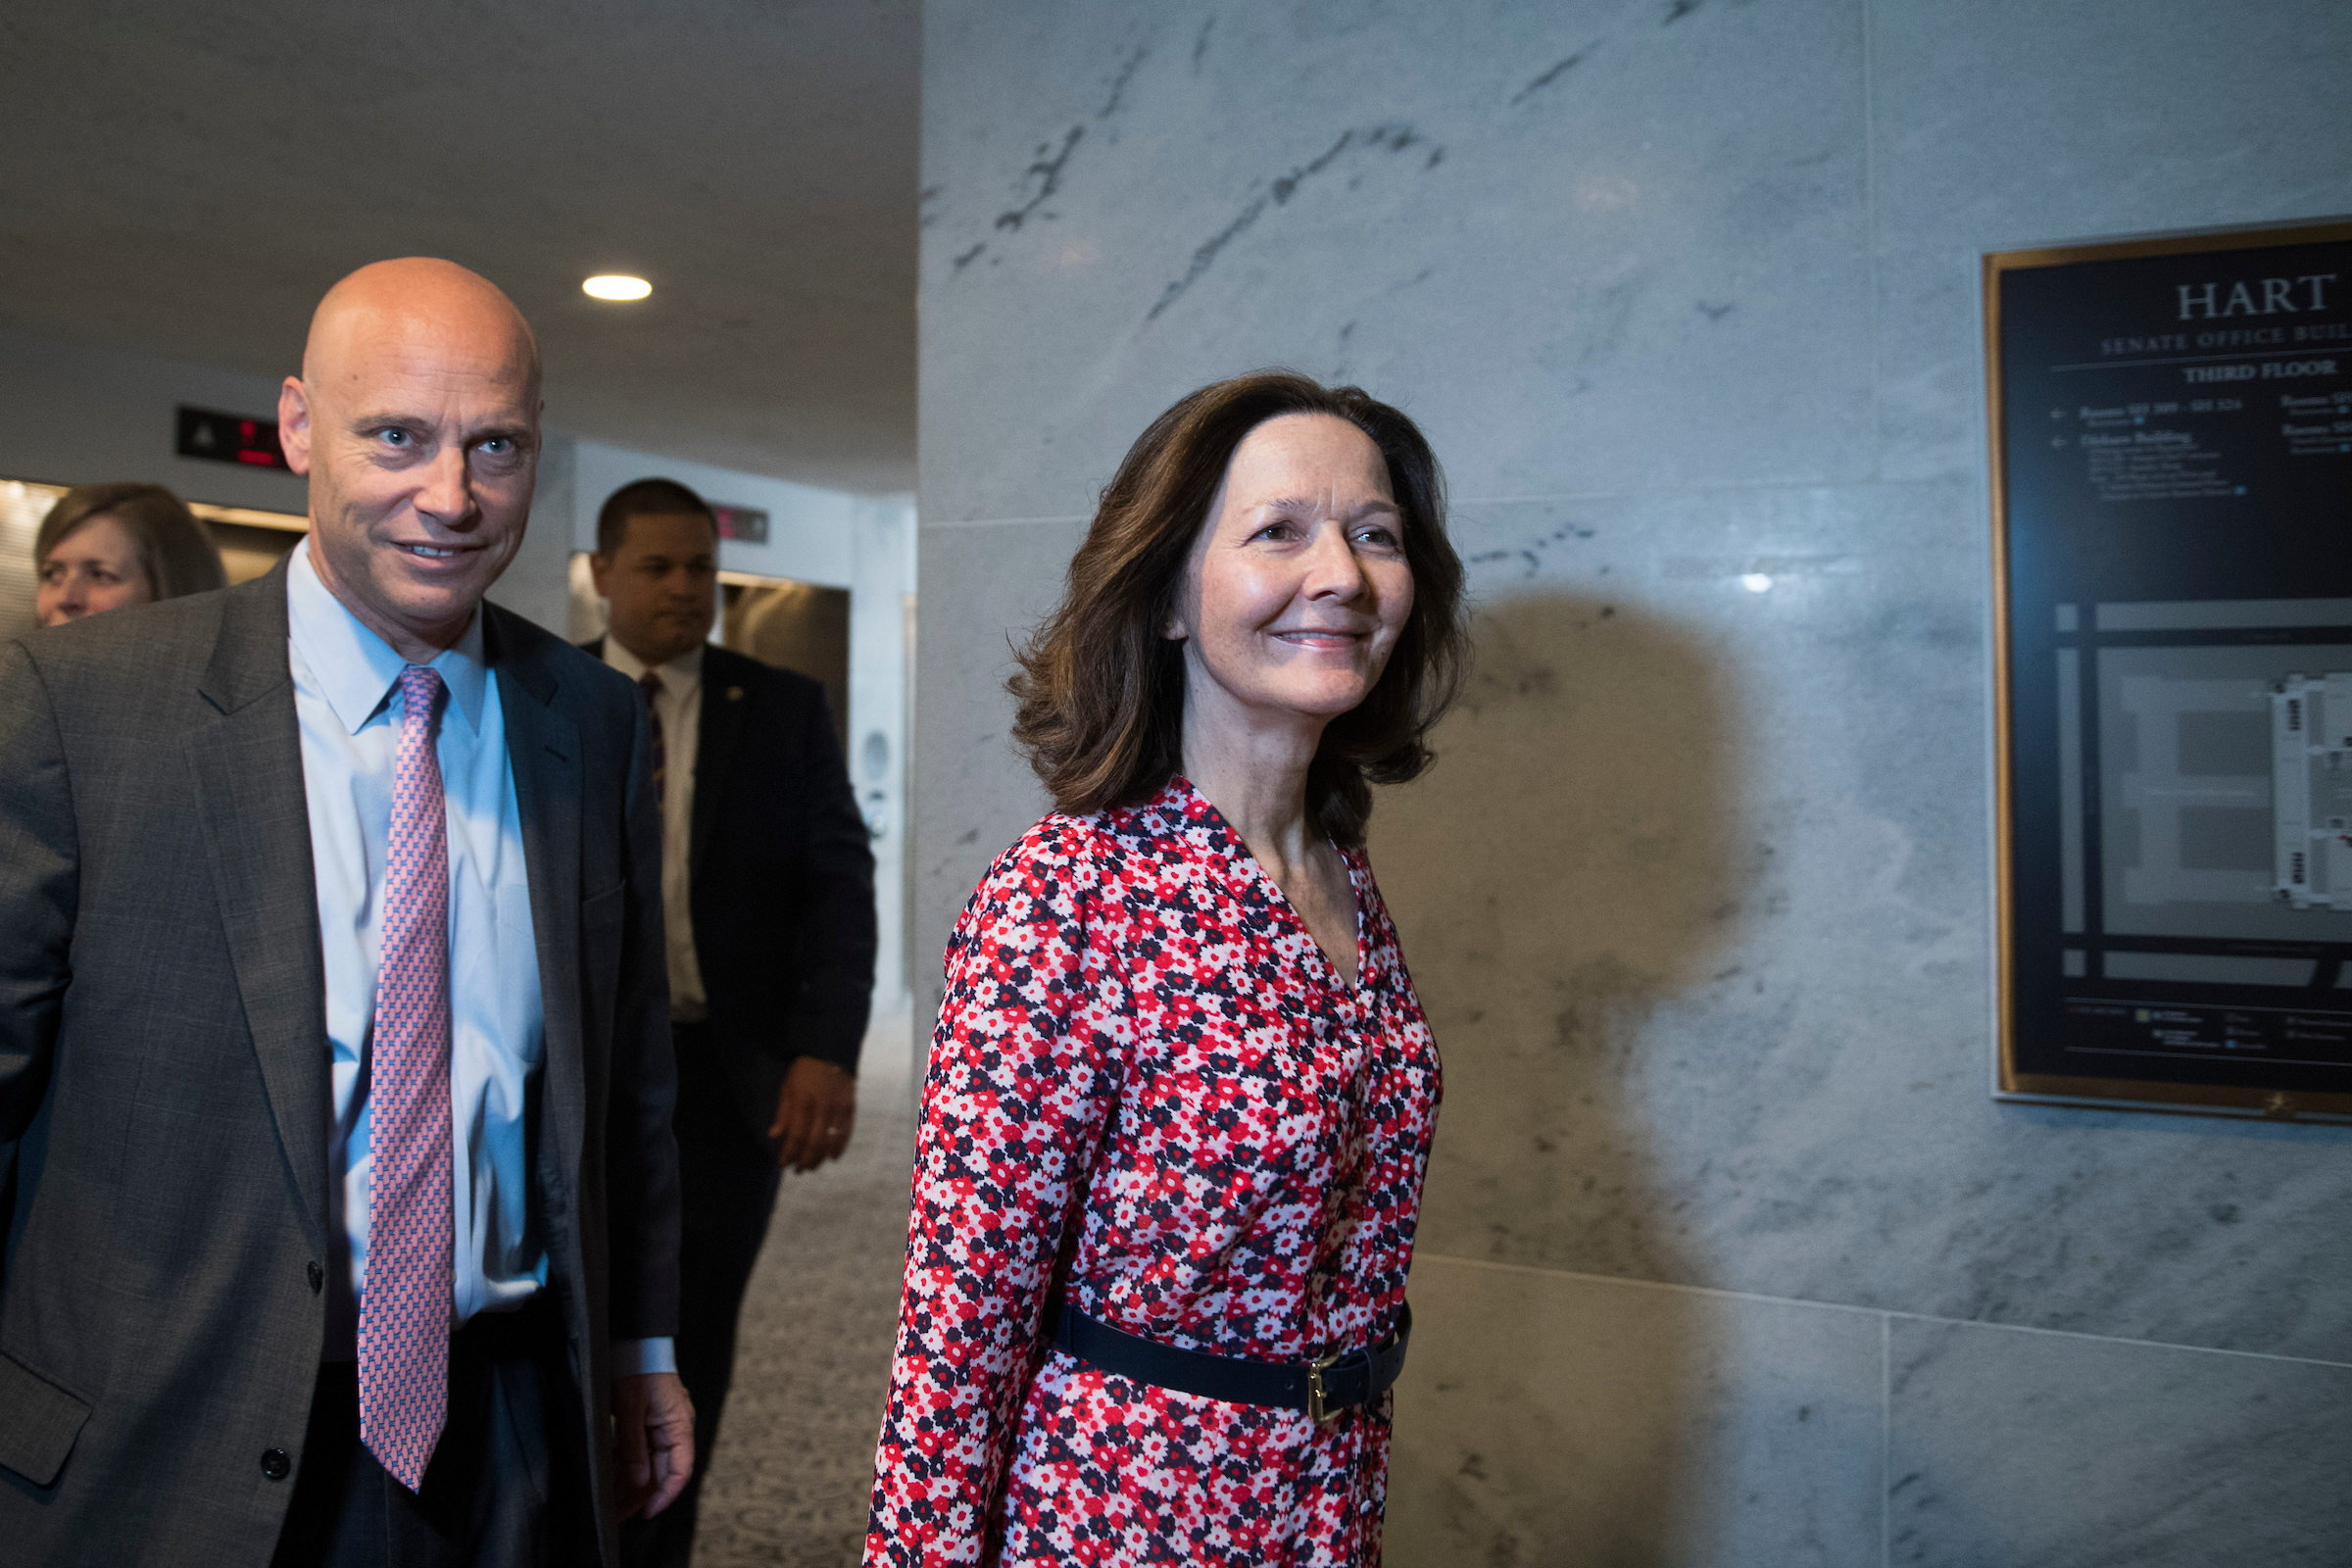 UNITED STATES - MAY 7: Gina Haspel, nominee to be director of the CIA, and Marc Short, White House legislative affairs director, arrive in Hart Building for meetings with Sen. Joe Manchin, D-W.Va., and other senators on May 7, 2018. (Photo By Tom Williams/CQ Roll Call)